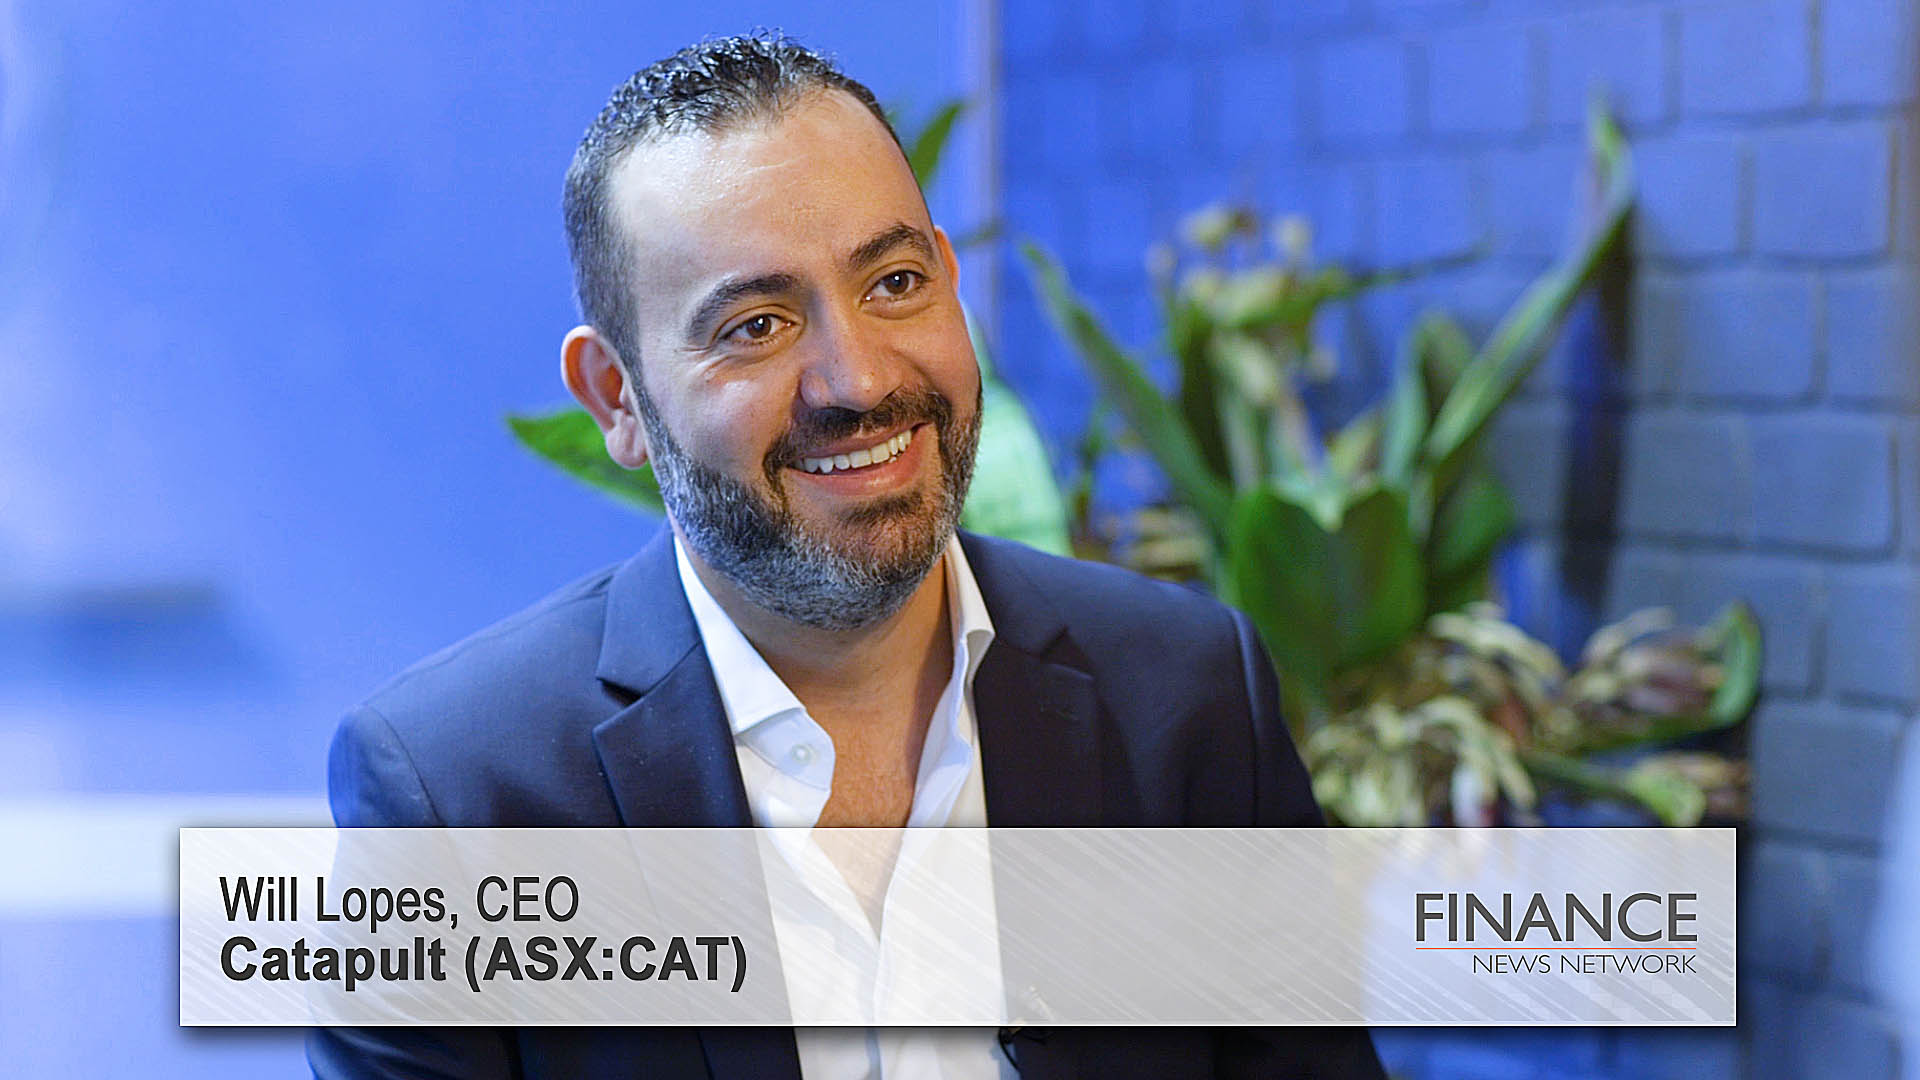 Catapult (ASX:CAT) 1H20 results & outlook